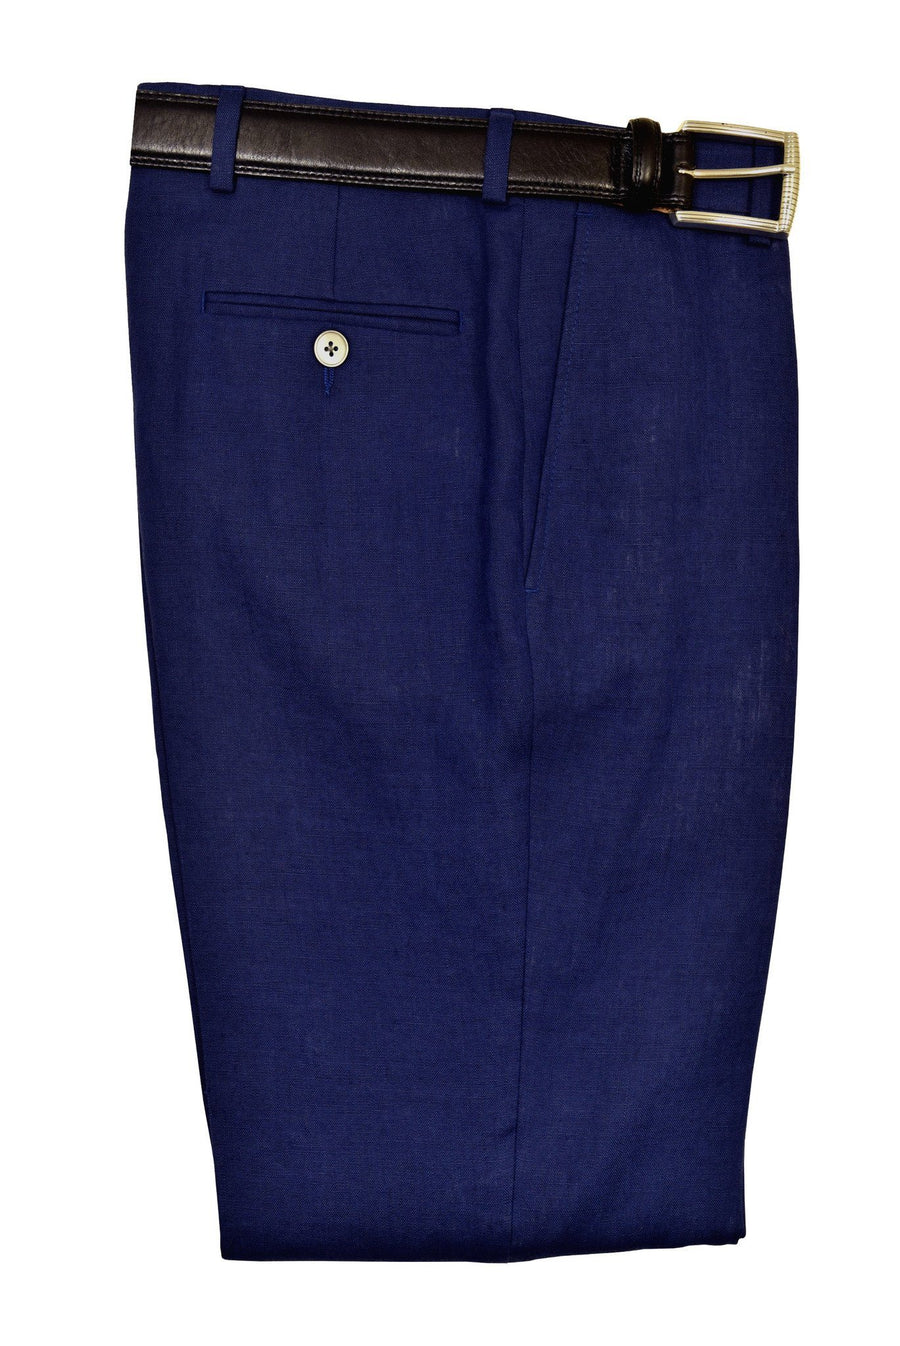 Lauren Ralph Lauren 19520P 100% Linen Boy's Suit Separate Pant - Linen - Blue, Plain Front Boys Suit Separate Pant Lauren